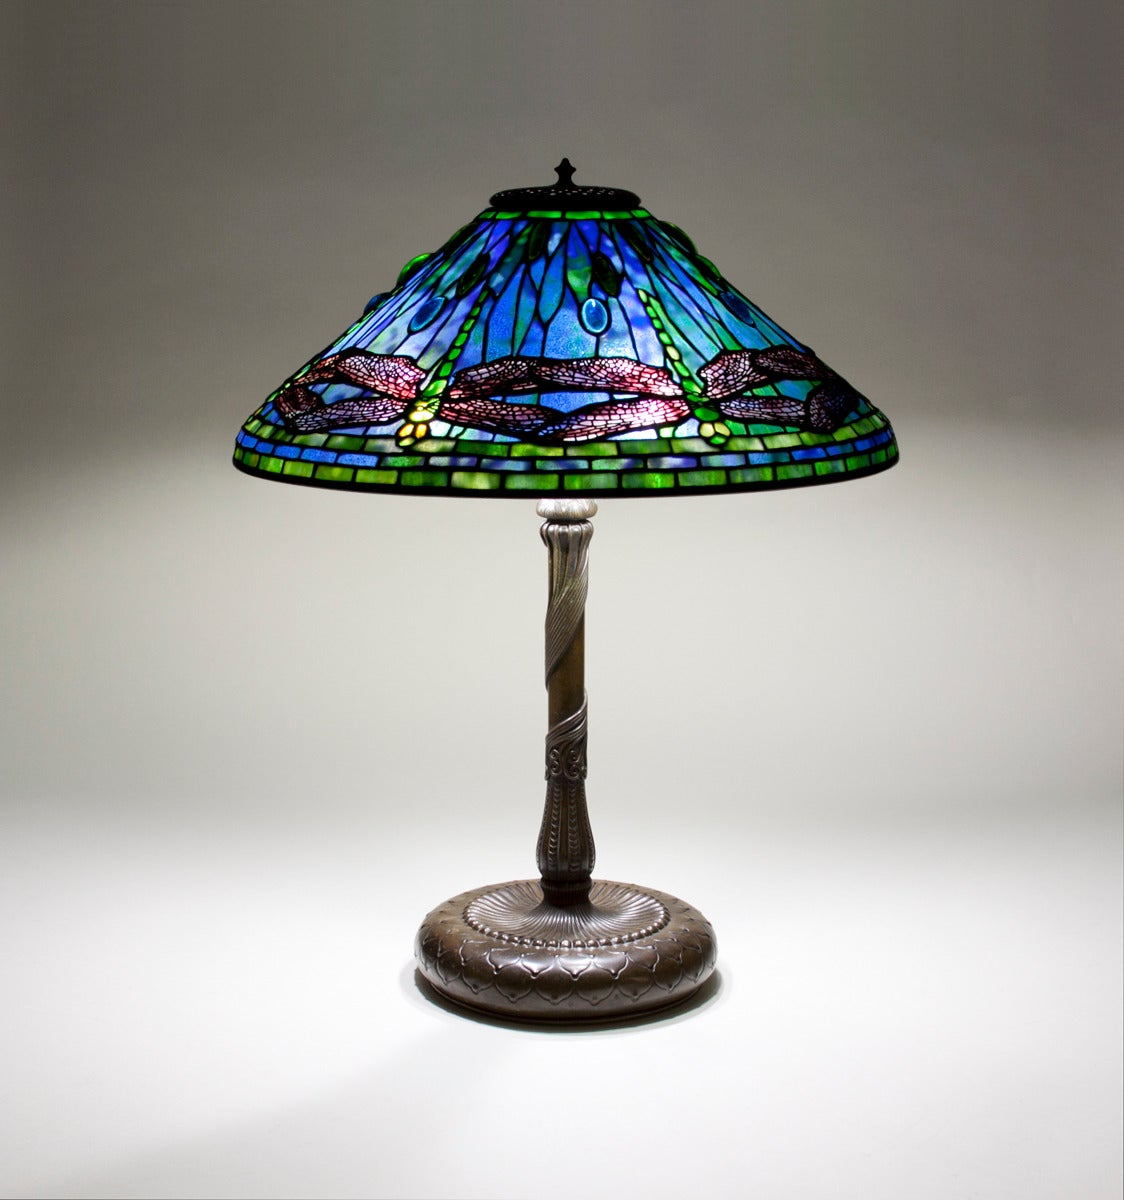 tiffany studios 39 dragonfly 39 table lamp for sale at 1stdibs. Black Bedroom Furniture Sets. Home Design Ideas